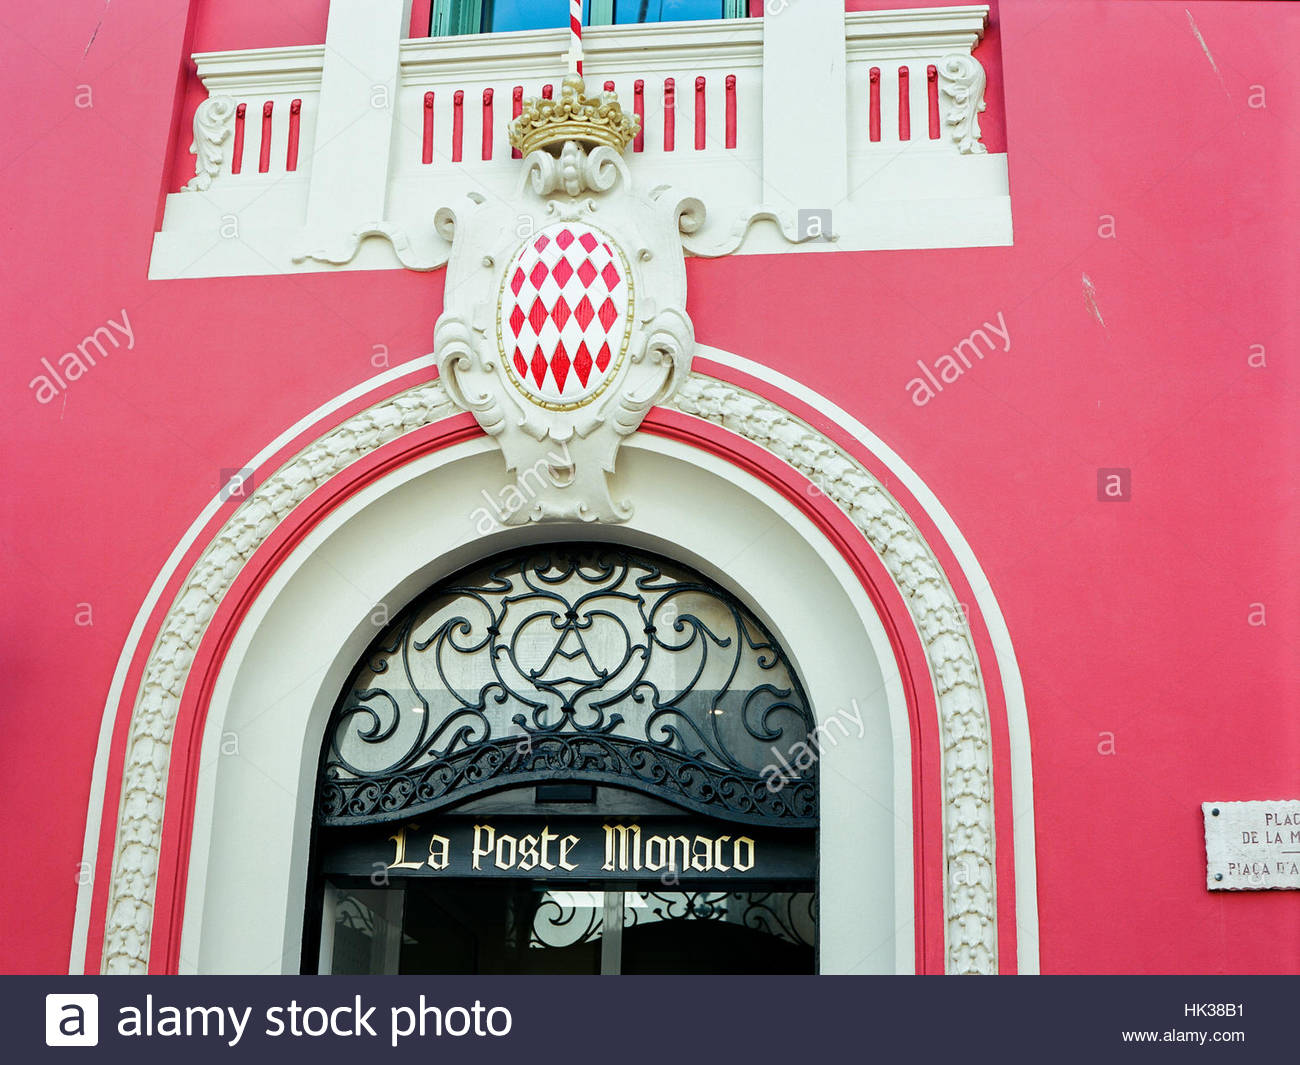 Post of monaco stock photos post of monaco stock images alamy